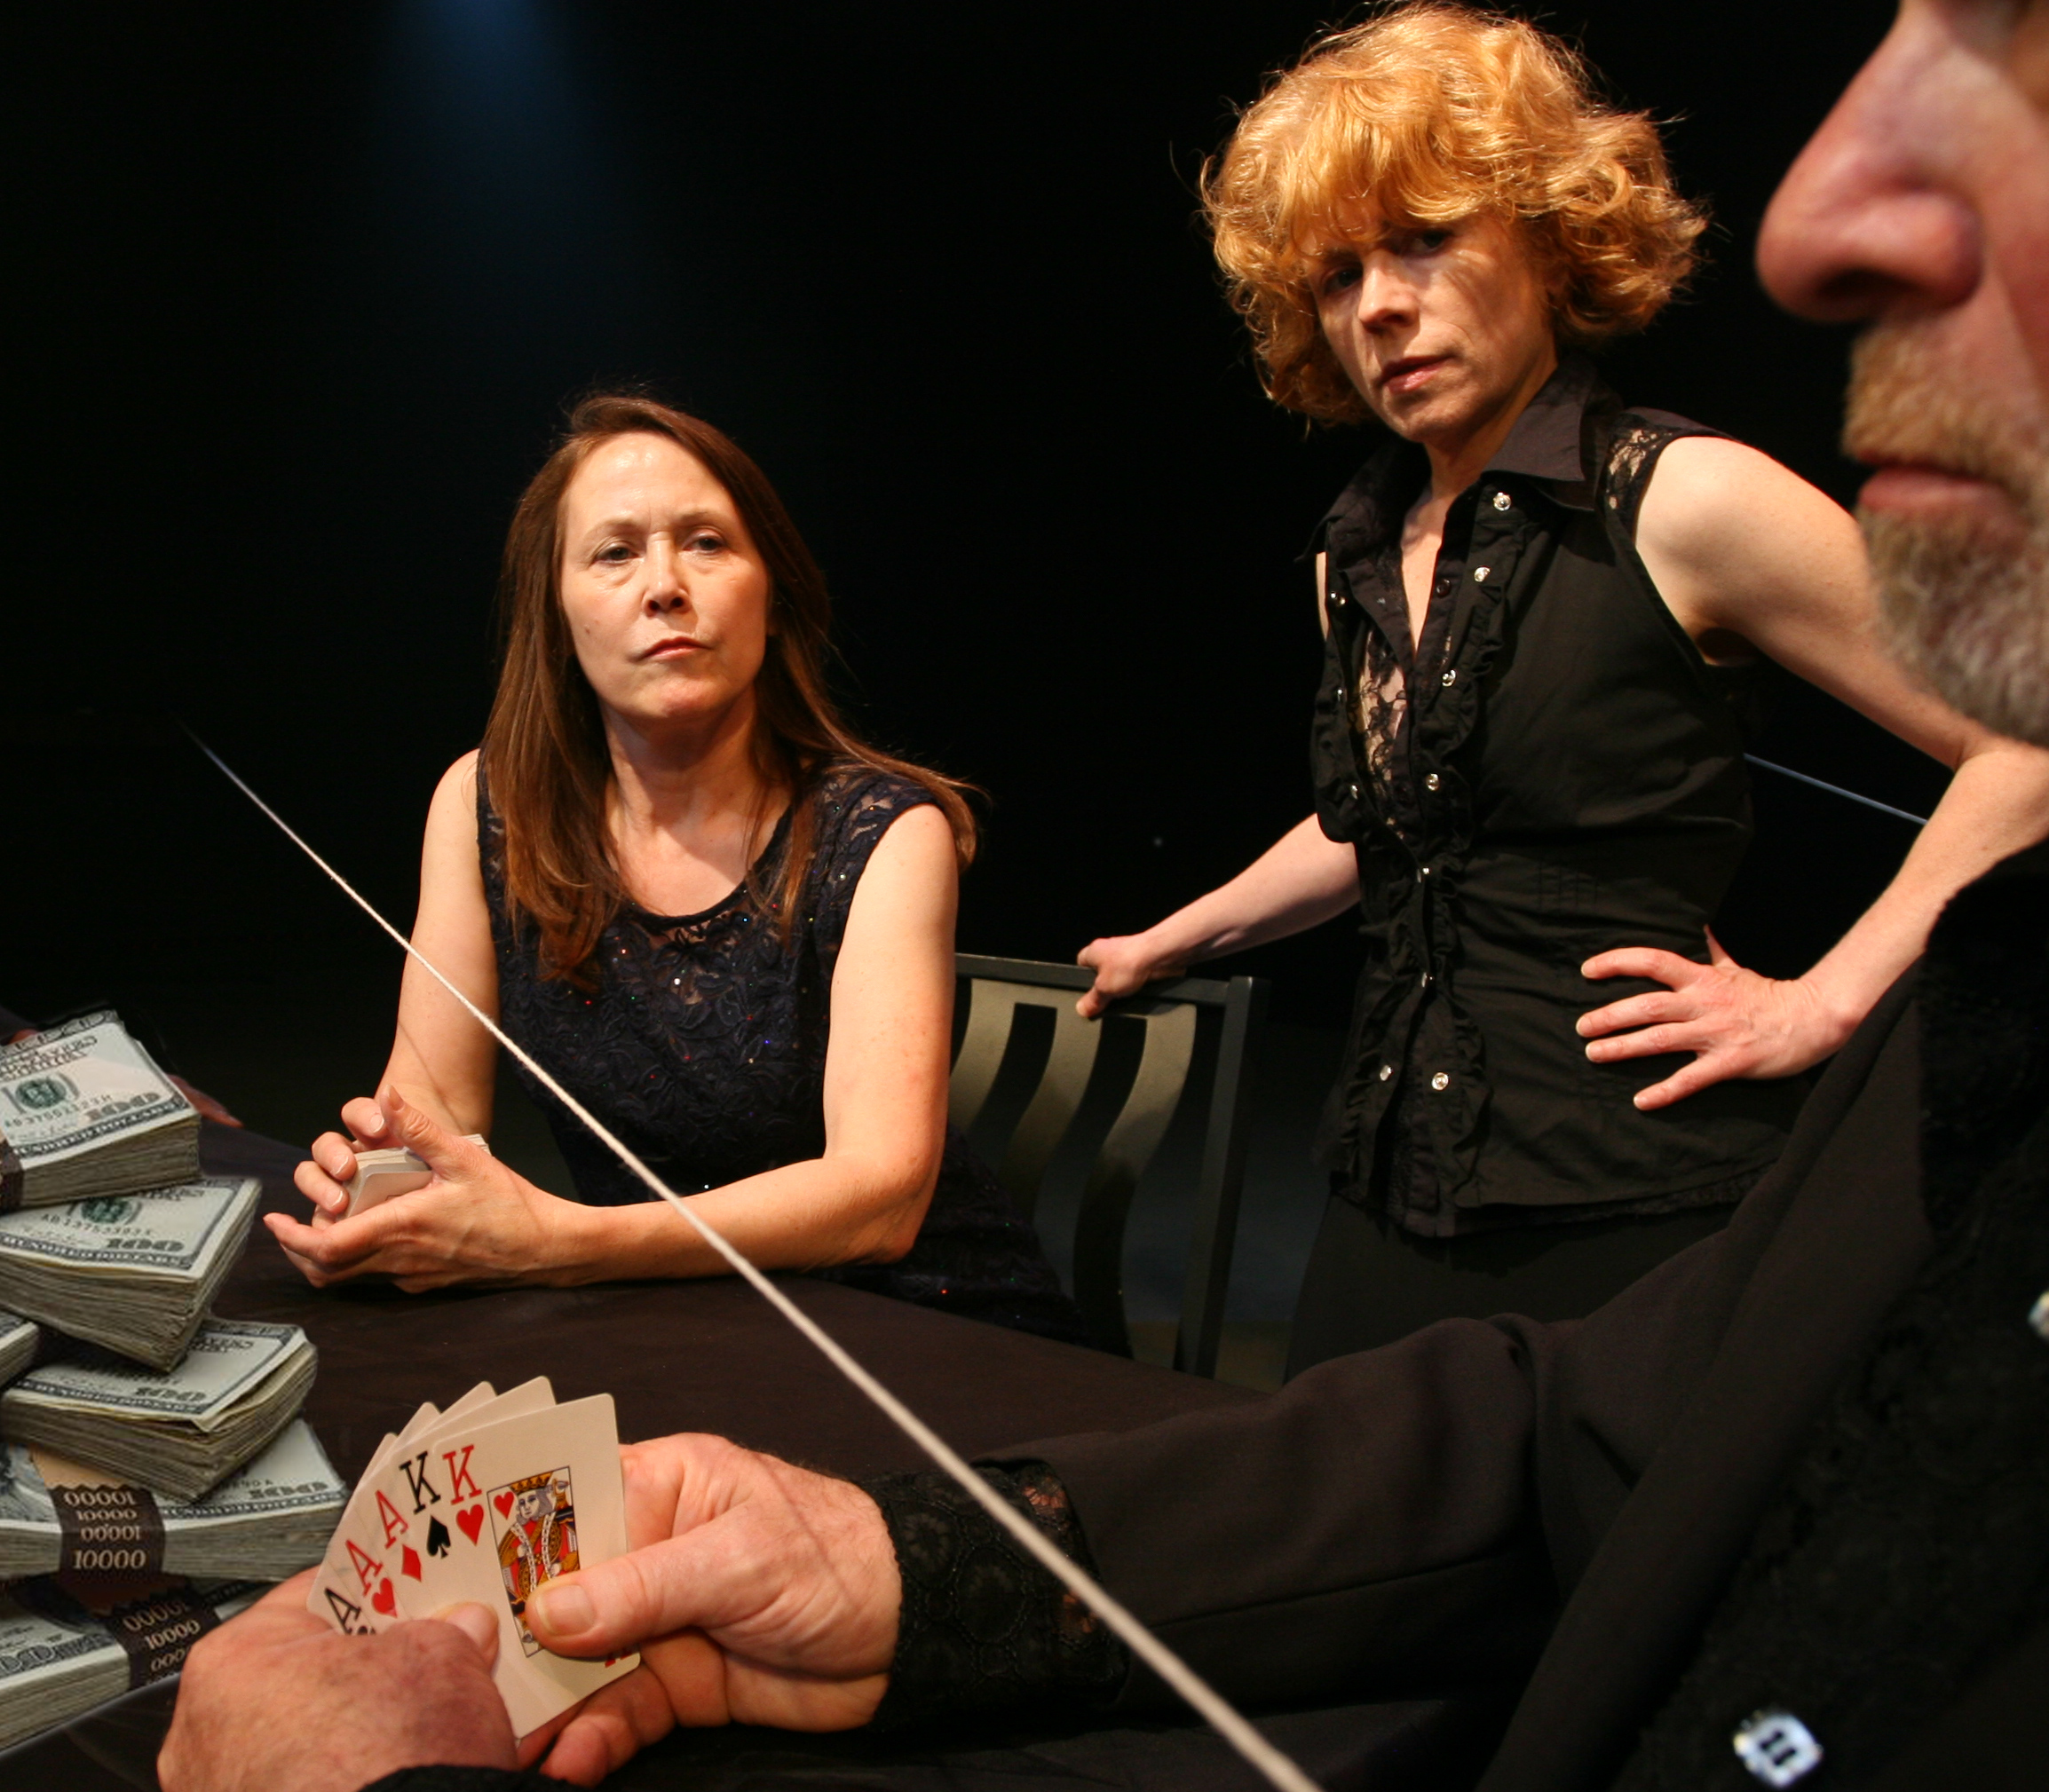 """Zugzwang Directed by Gerry Mouawad as part of his """"Opera Beyond Words."""" With Carol Triffle and Gregg Bielemeier."""